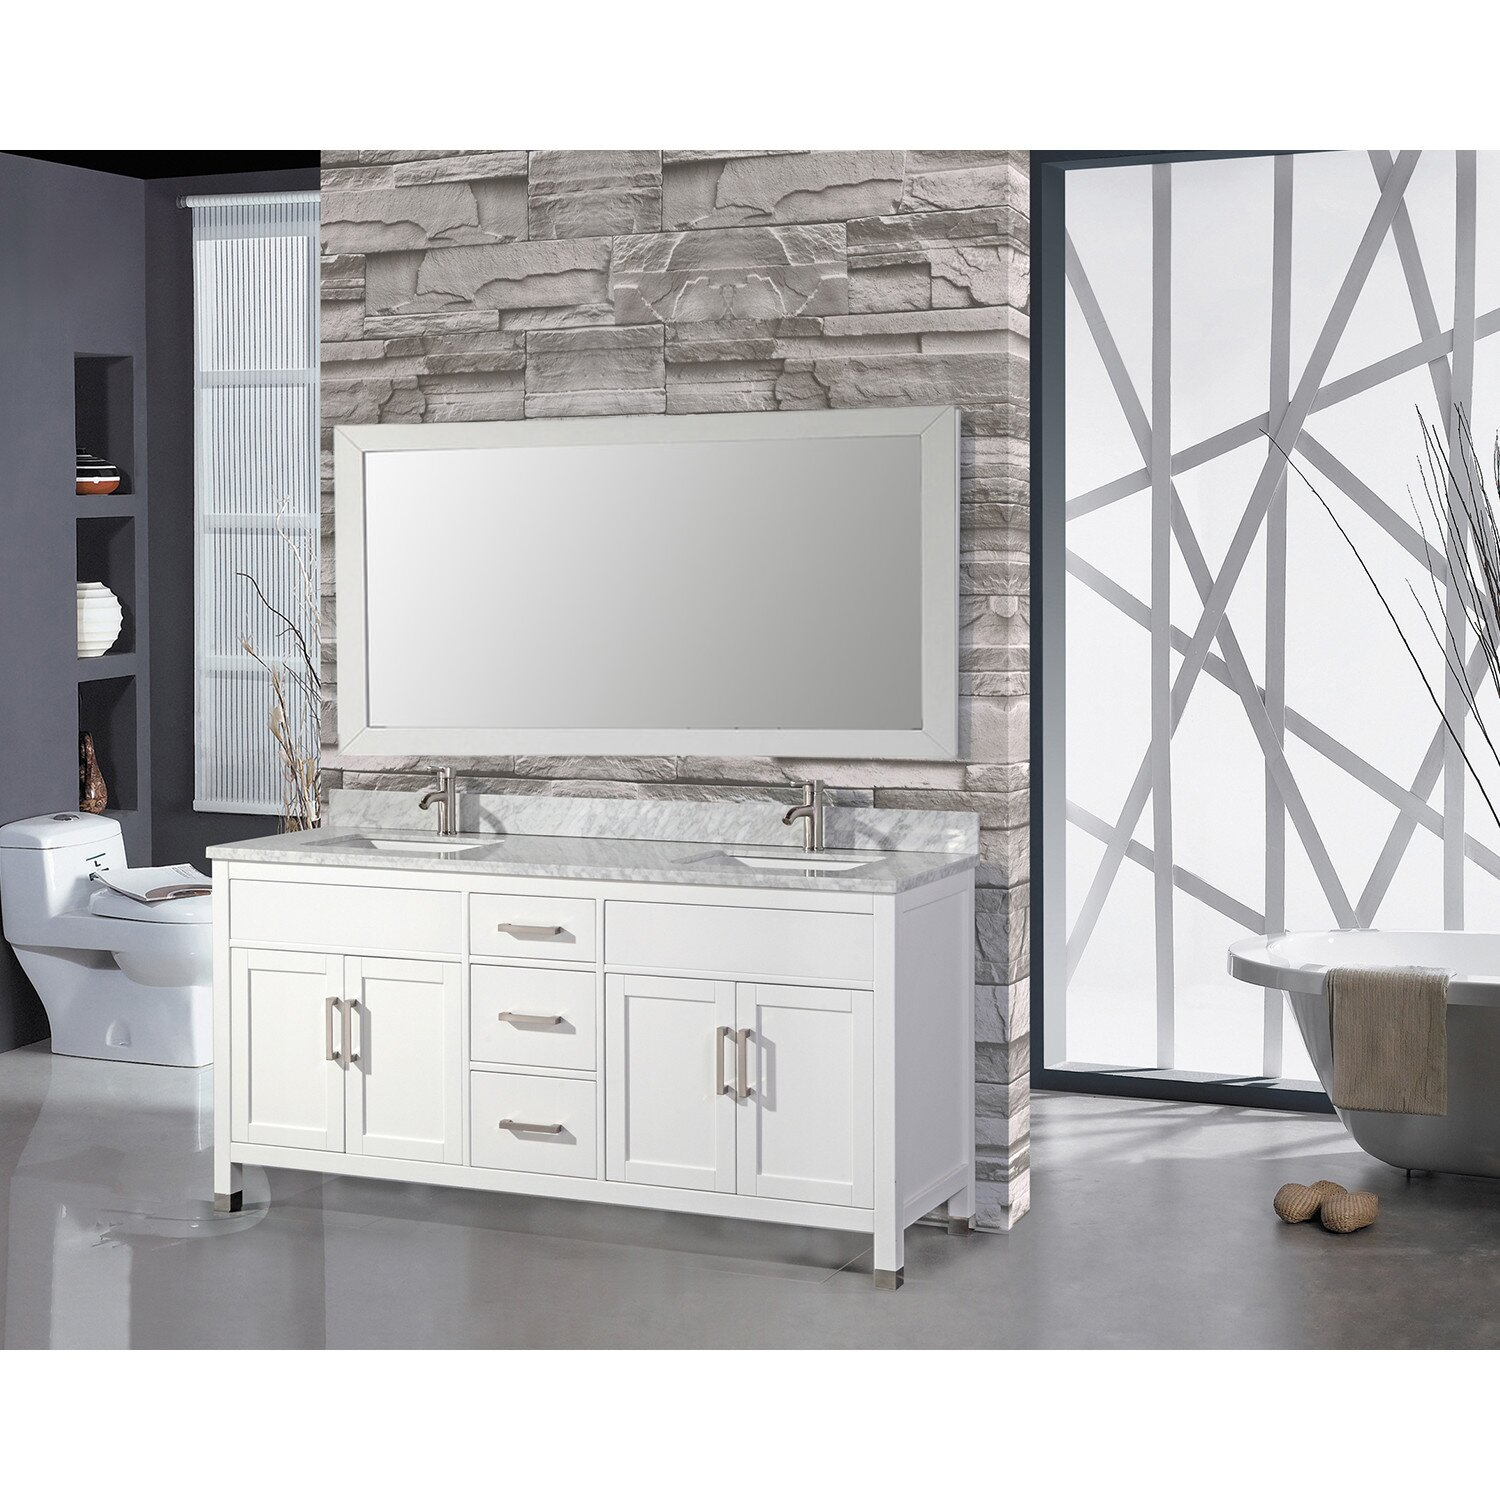 Mtdvanities ricca 72 double sink bathroom vanity set with - 72 inch single sink bathroom vanity ...